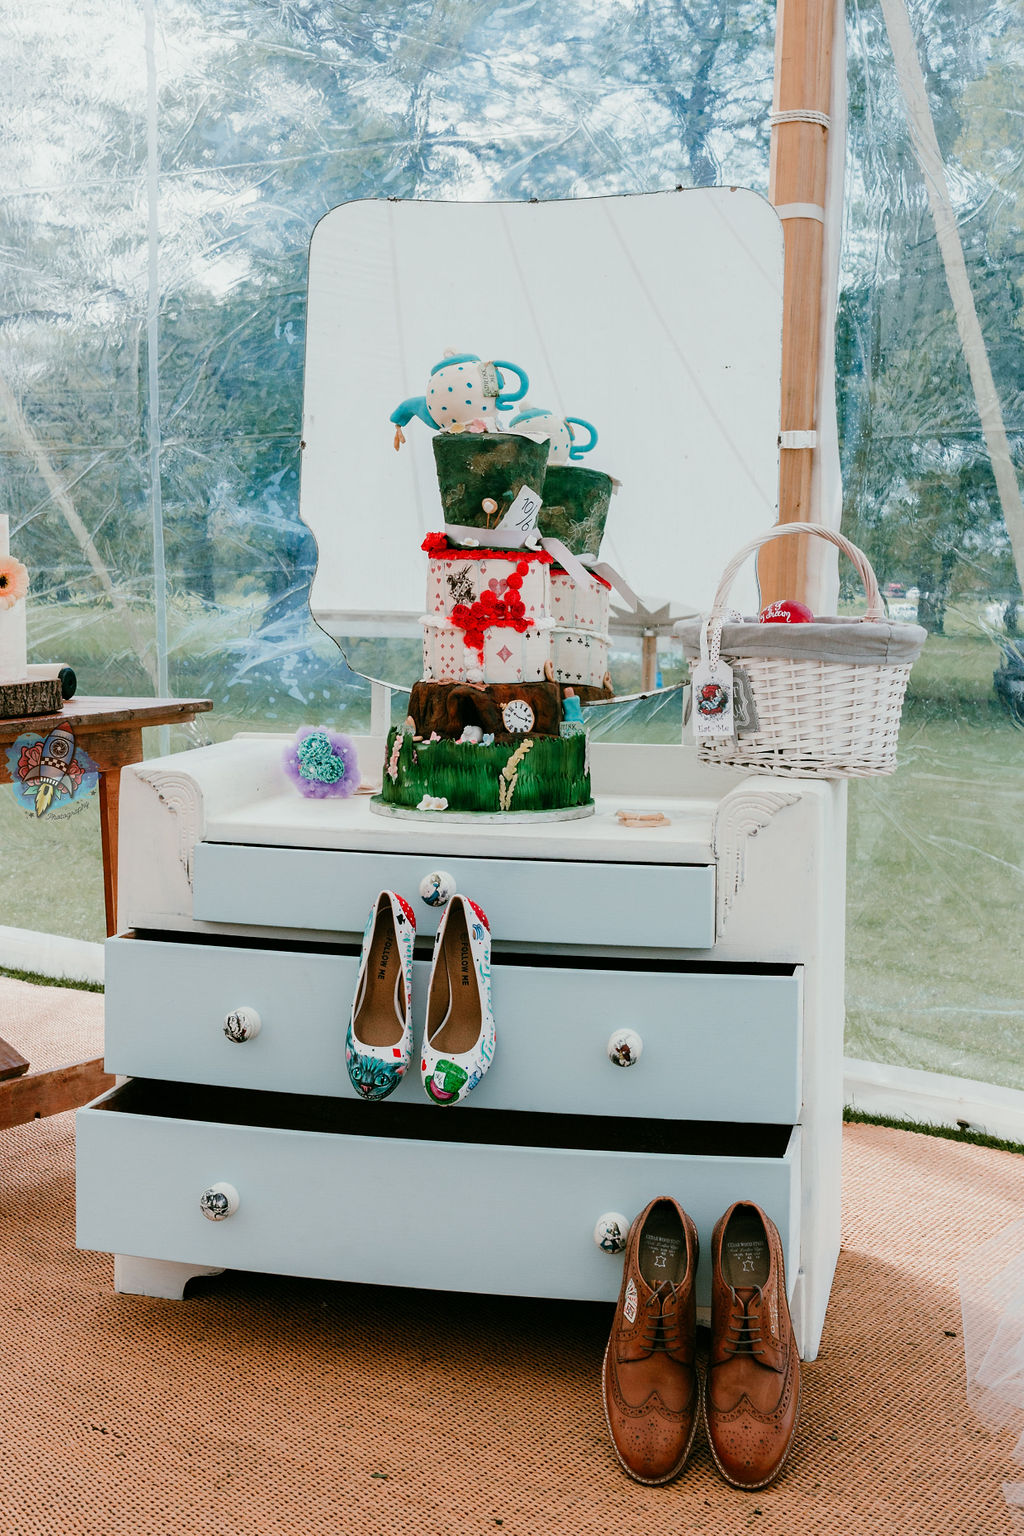 Confection of affection - quirky wedding cake - alice in wonderland wedding cake - creative wedding cake - leicester 1